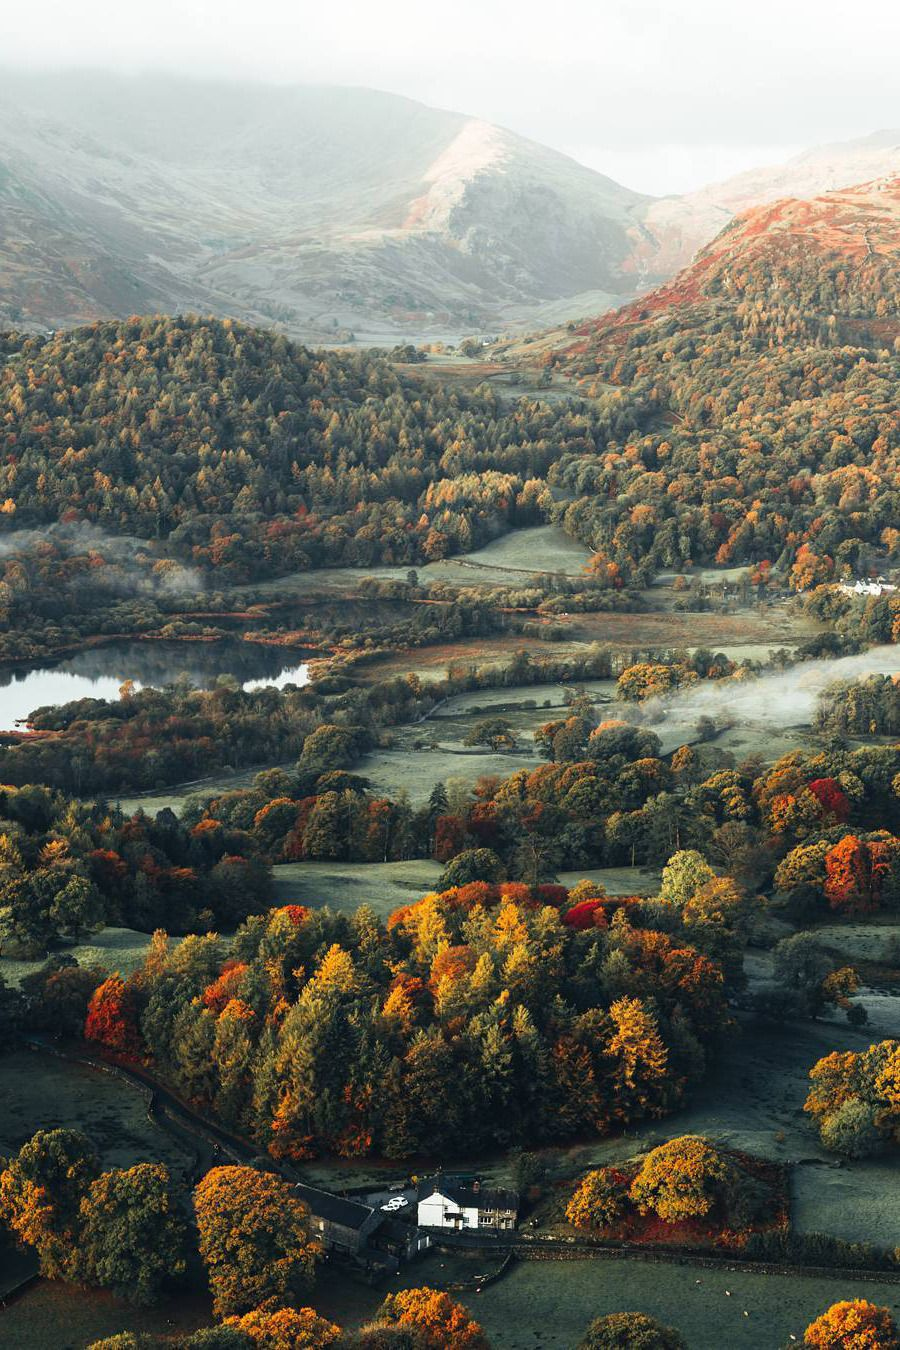 Enchantedengland Wanderlusteurope Loughrigg Fell Lake District England Annnnnnd A Bit More Of The Lake District Cumbria F Beautiful Nature Scenery